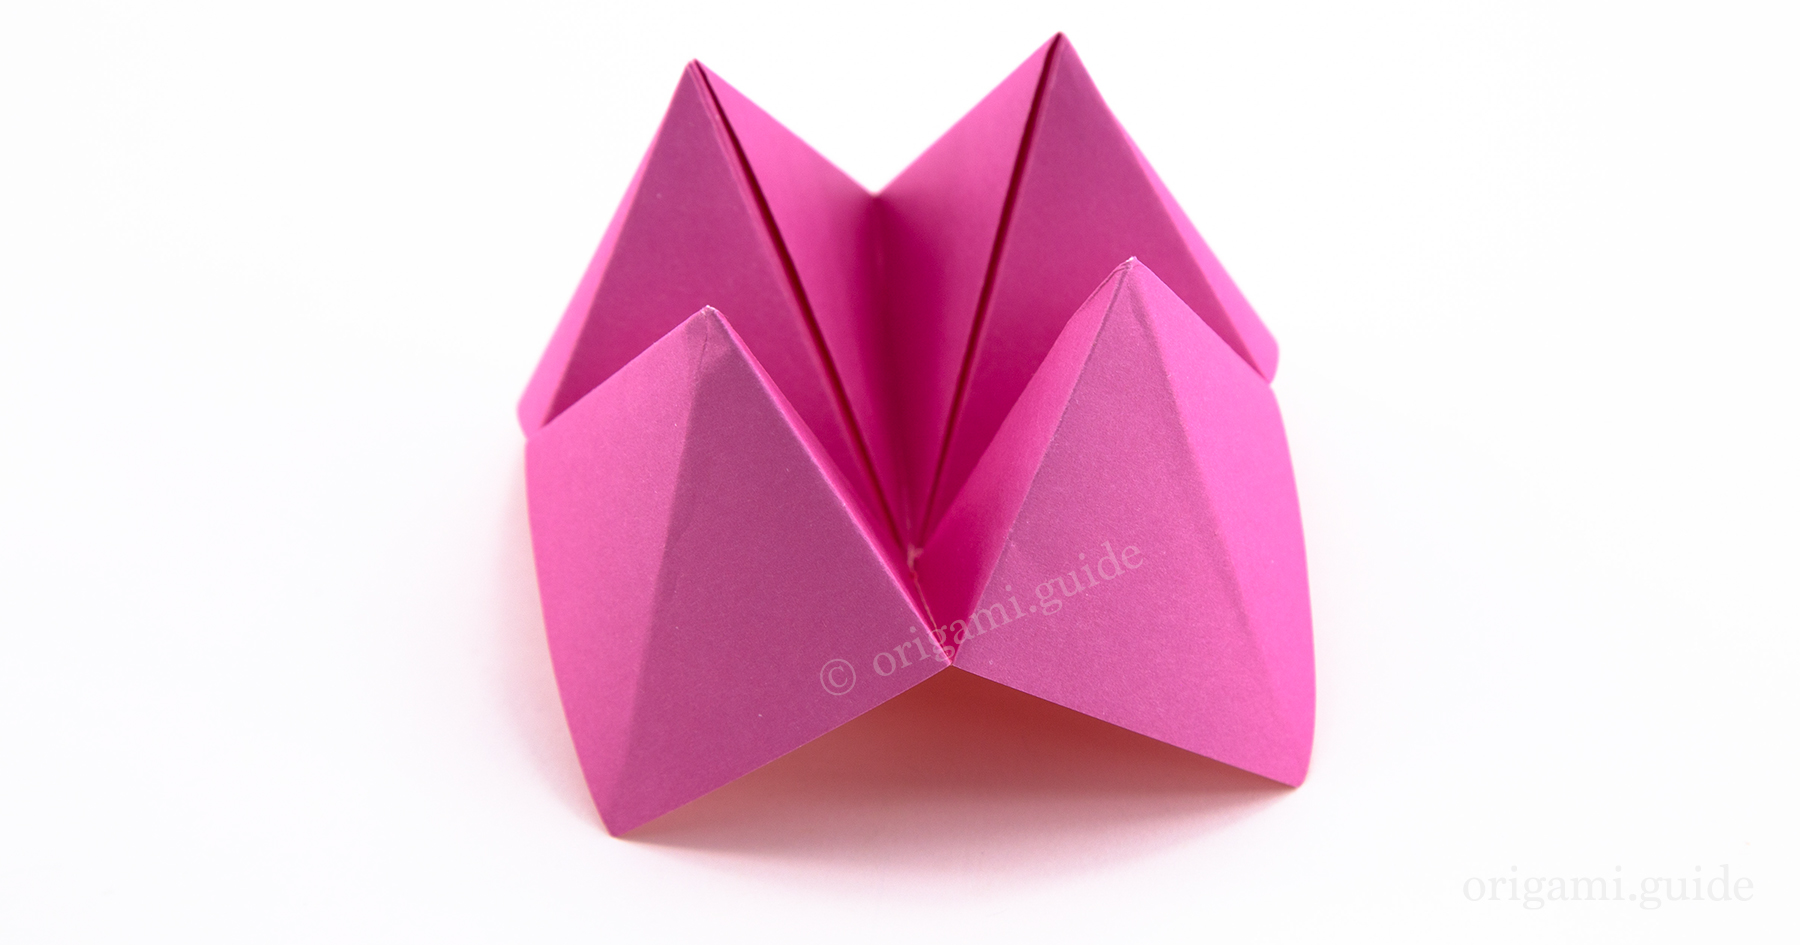 How To Make An Origami Fortune Teller | Origami Guide - Part 3 - photo#9